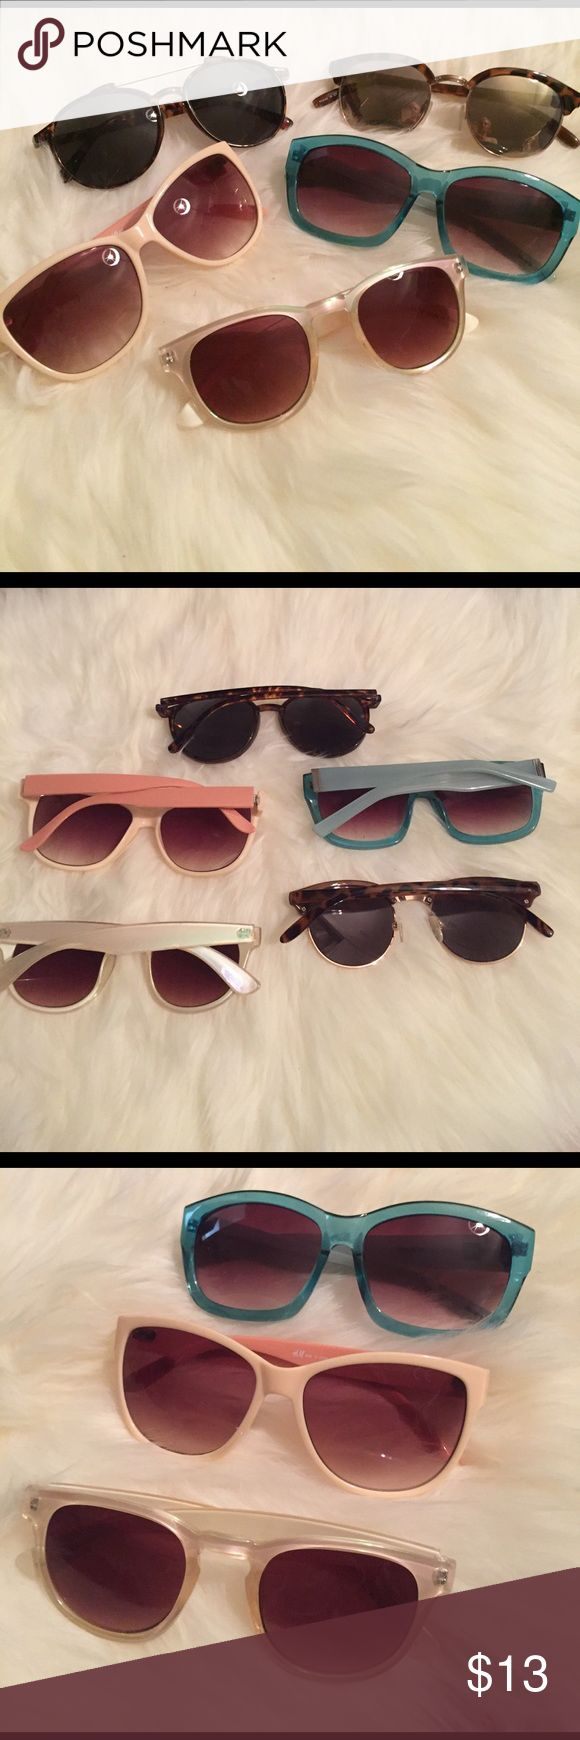 "Lot of 5 Sunnies! 5 pairs of sunglasses, all shapes and sizes! Sunnies are my favorite way to polish any look! Blue are from the GAP, style name is ""Lafayette"", iridescent Aldo, pink and aviator HM, mirrored tortoise shell Old Navy. Used,good condition. Summer's coming! 😎 Accessories Sunglasses"